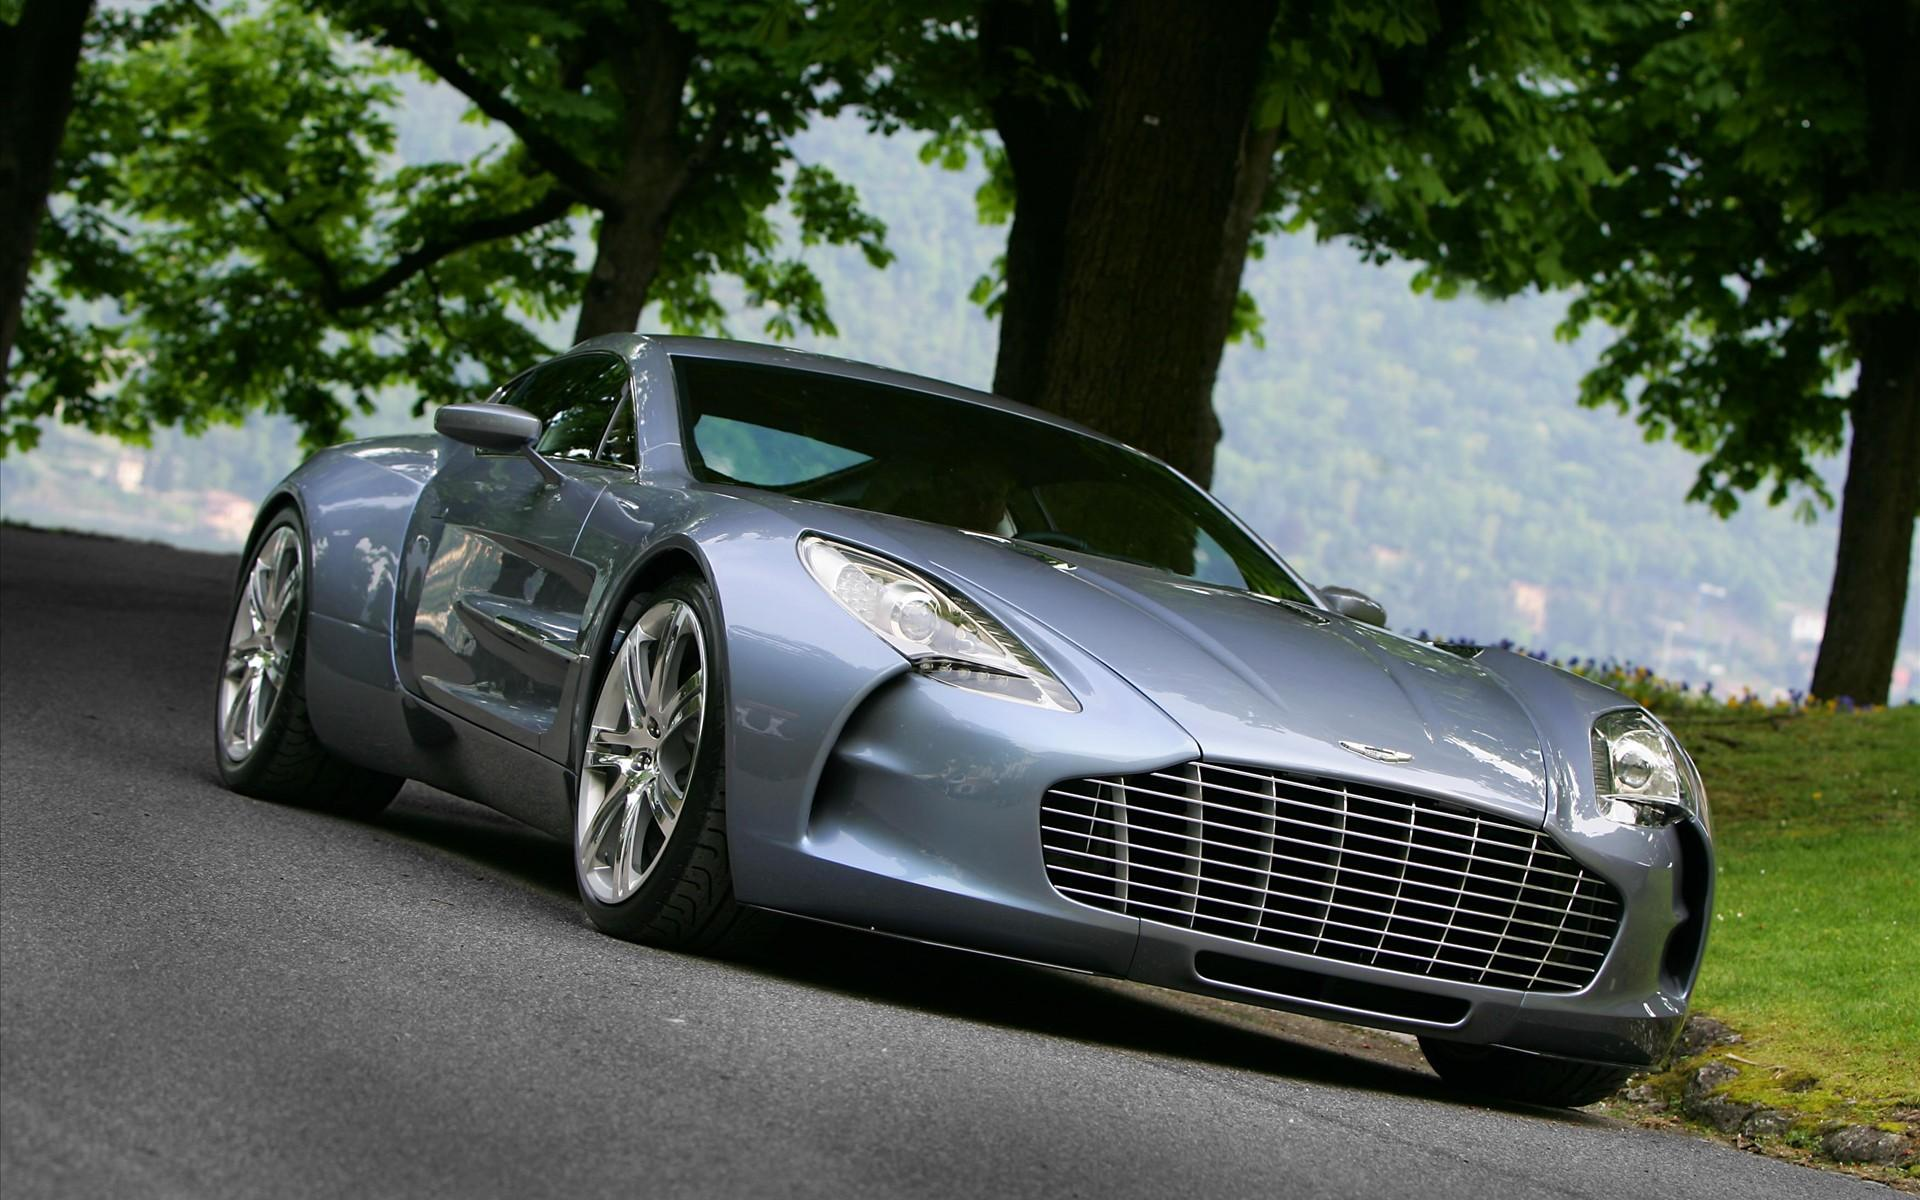 Aston Martin One 77 Wallpapers | HD Wallpapers